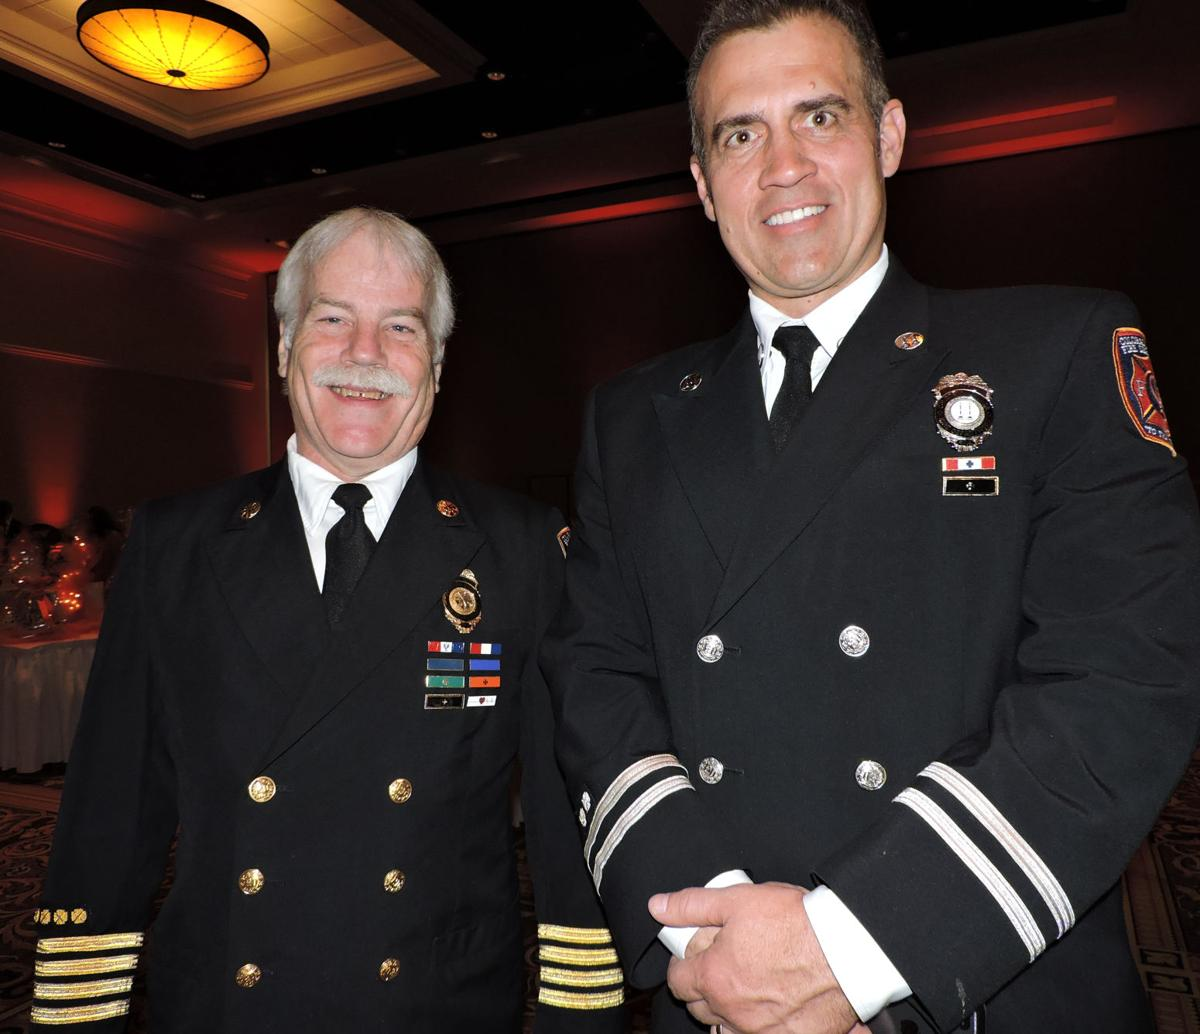 UCHealth Memorial Hospital Gala: Deputy Fire Chief Randy Royal, left, and Capt. Brian Vaughan 042818 Photo by Linda Navarro